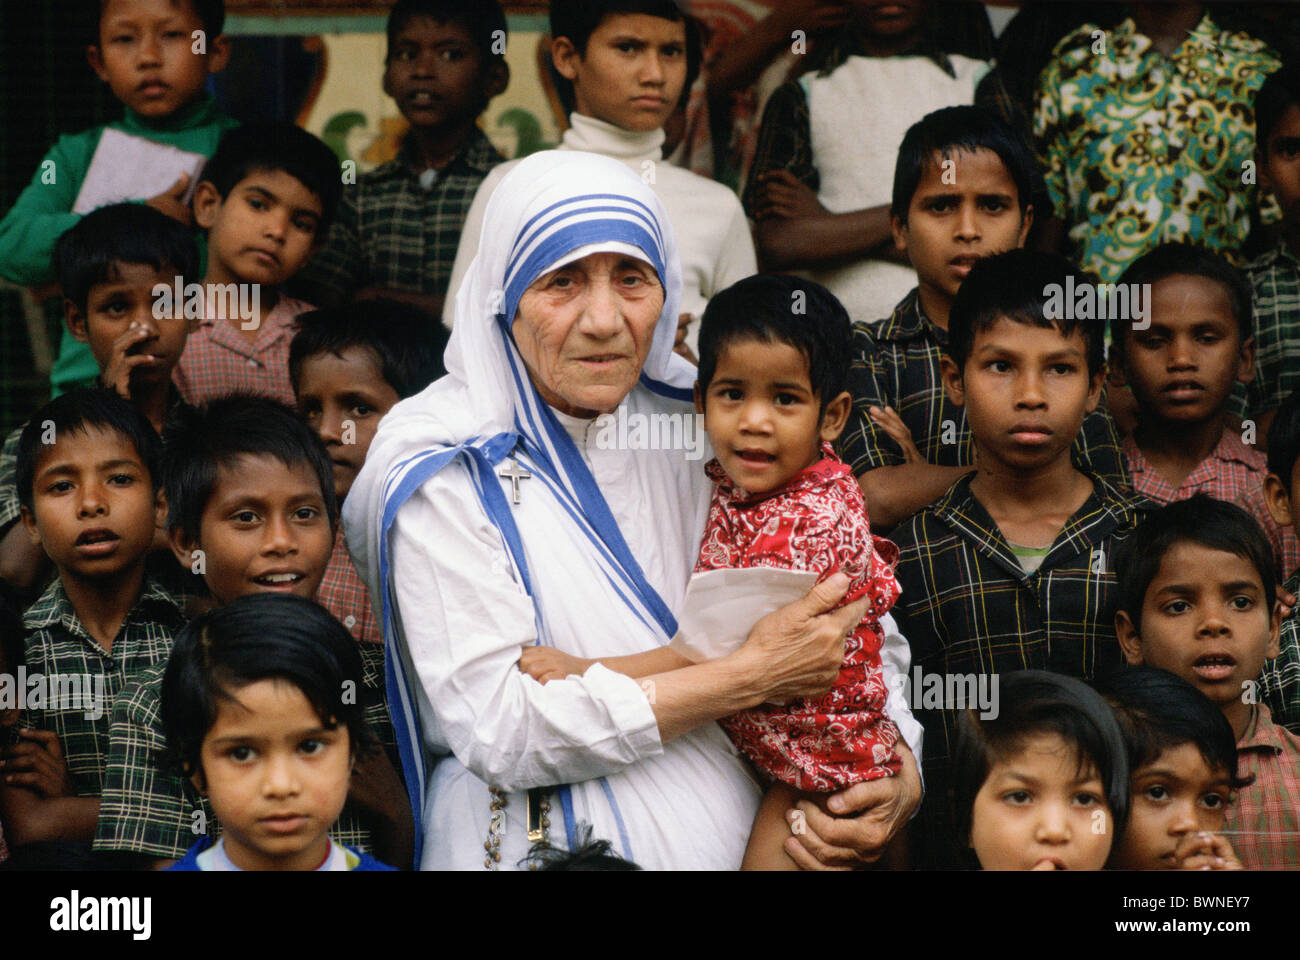 Mother Teresa accompanied by children at her mission in Calcutta, India Stock Photo